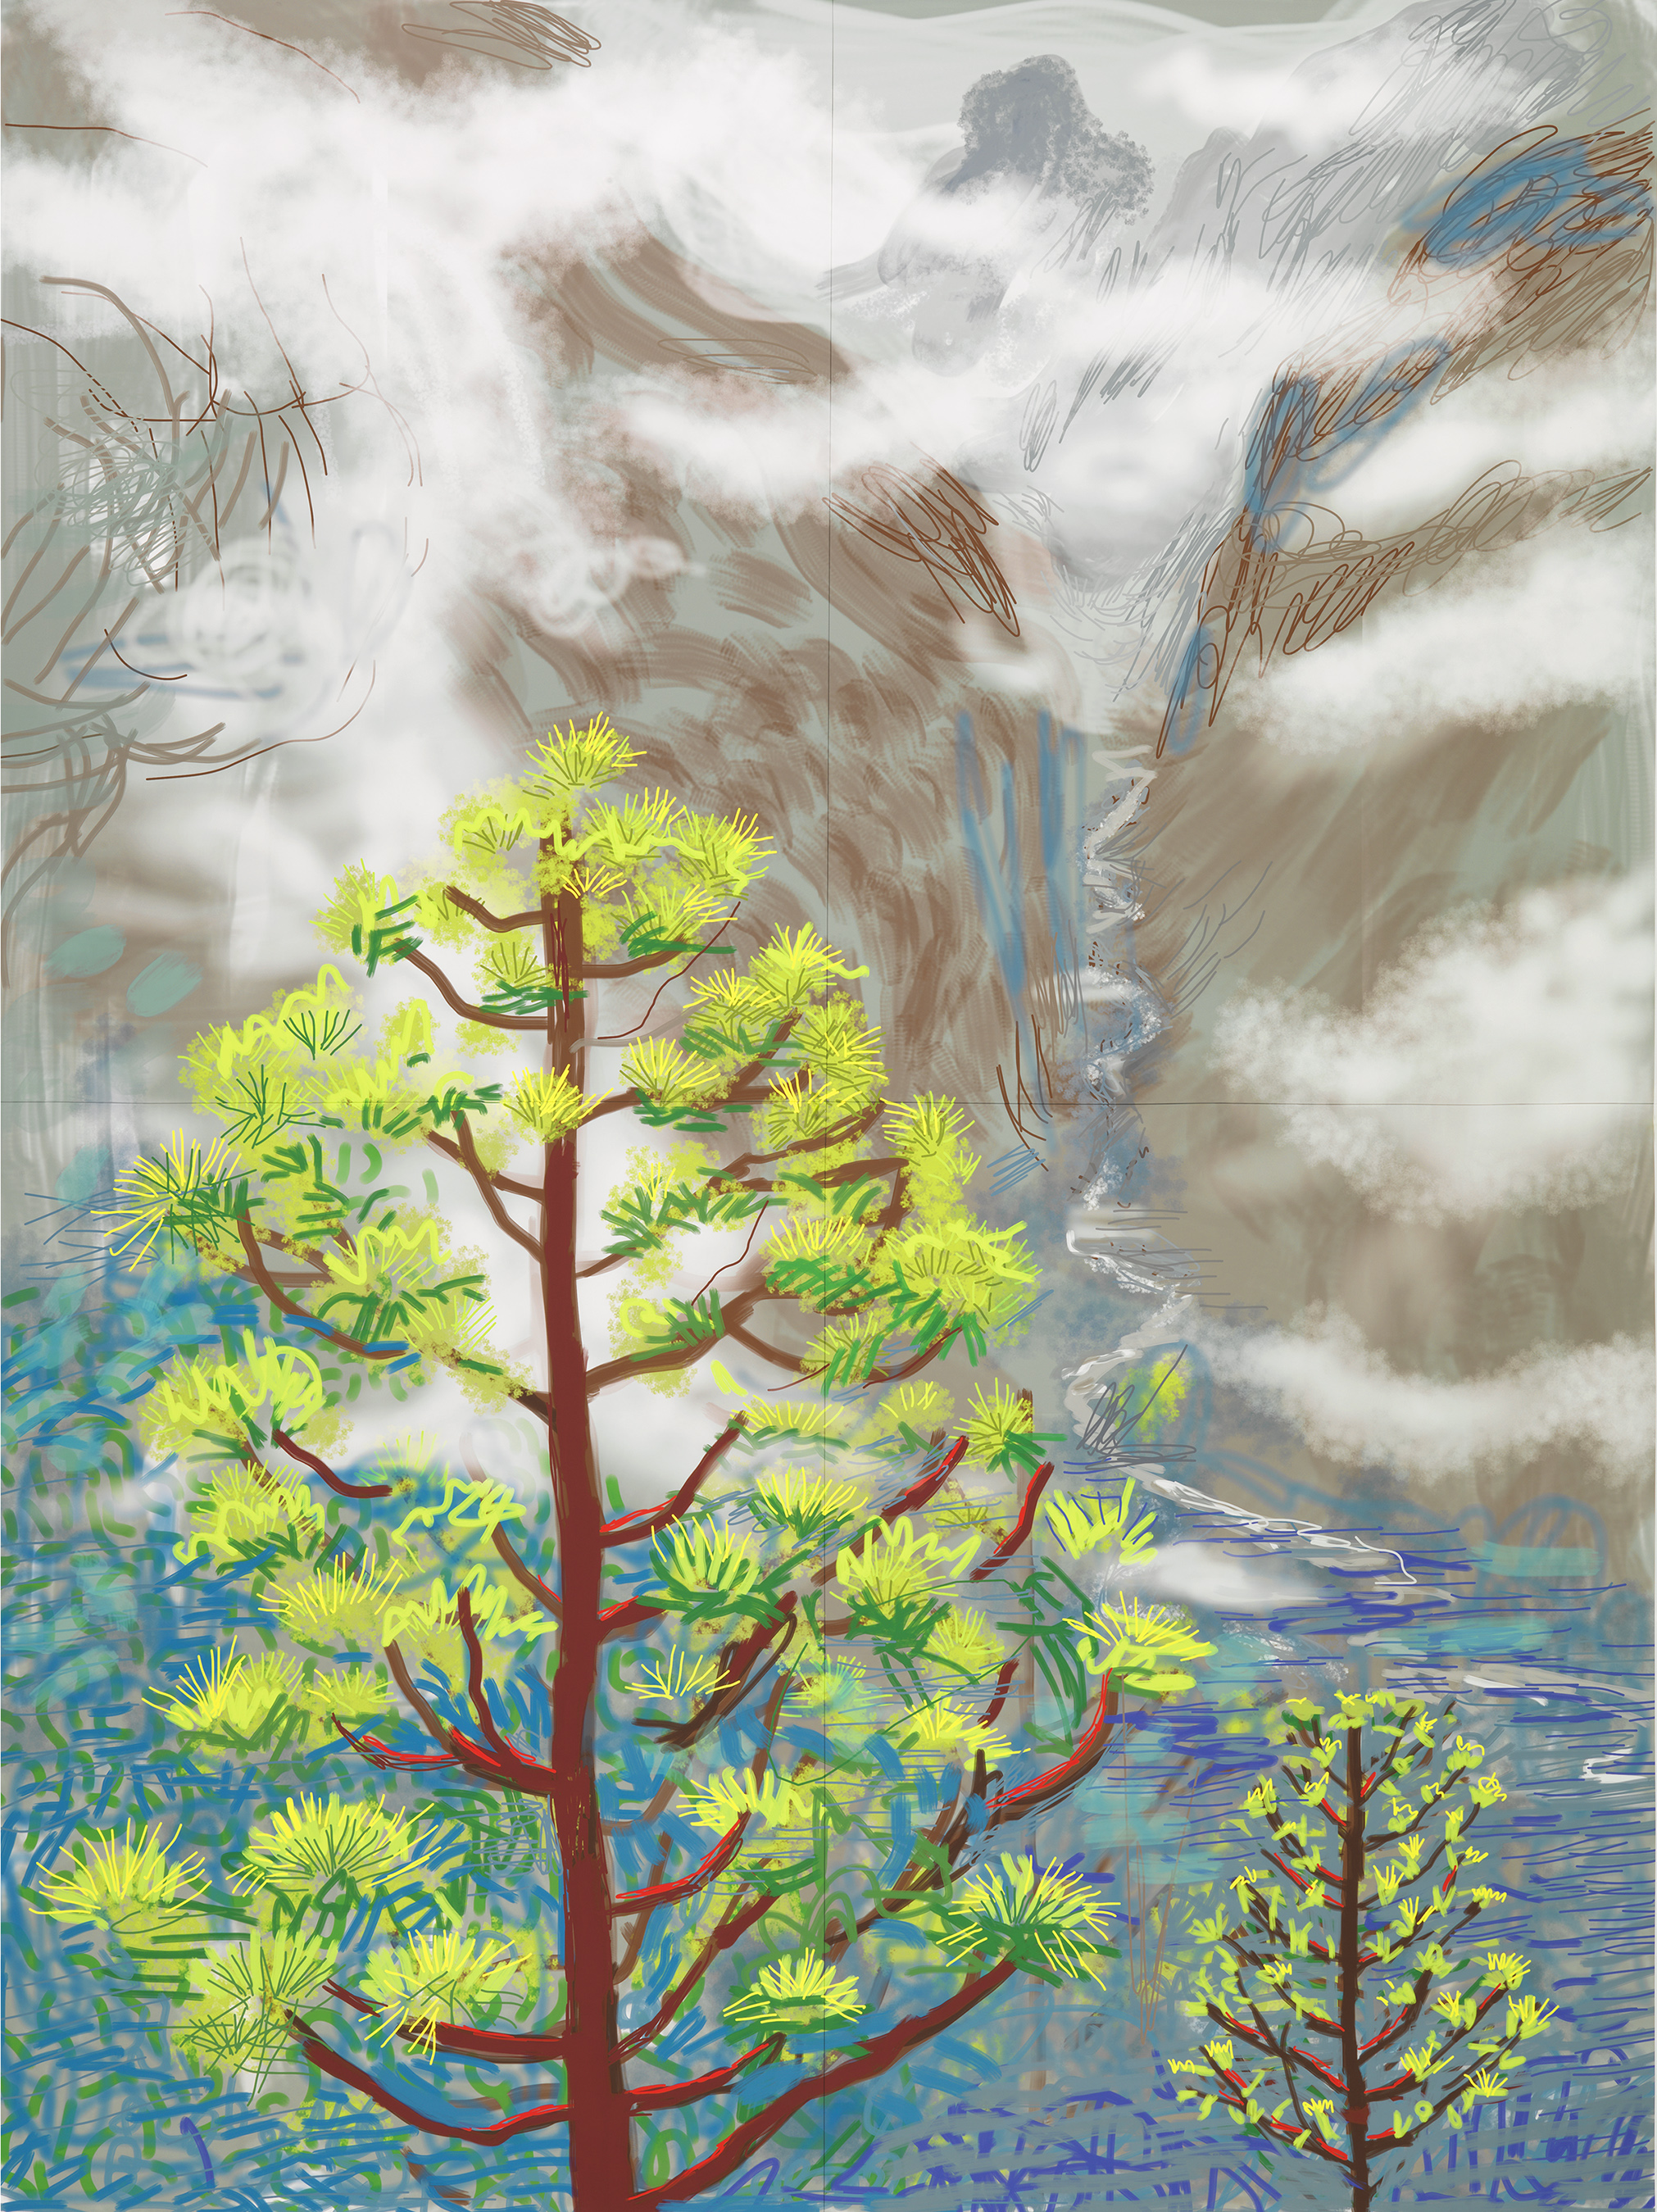 """Yosemite I, October 5th 2011"" iPad drawing printed on four sheets of paper (46 3/8 x 34 7/8"" each), mounted on four sheets of Dibond Edition 1 of 12 92 3/4 x 69 3/4"" overall © David Hockney Photo Credit: Richard Schmidt Collection The David Hockney Foundation"